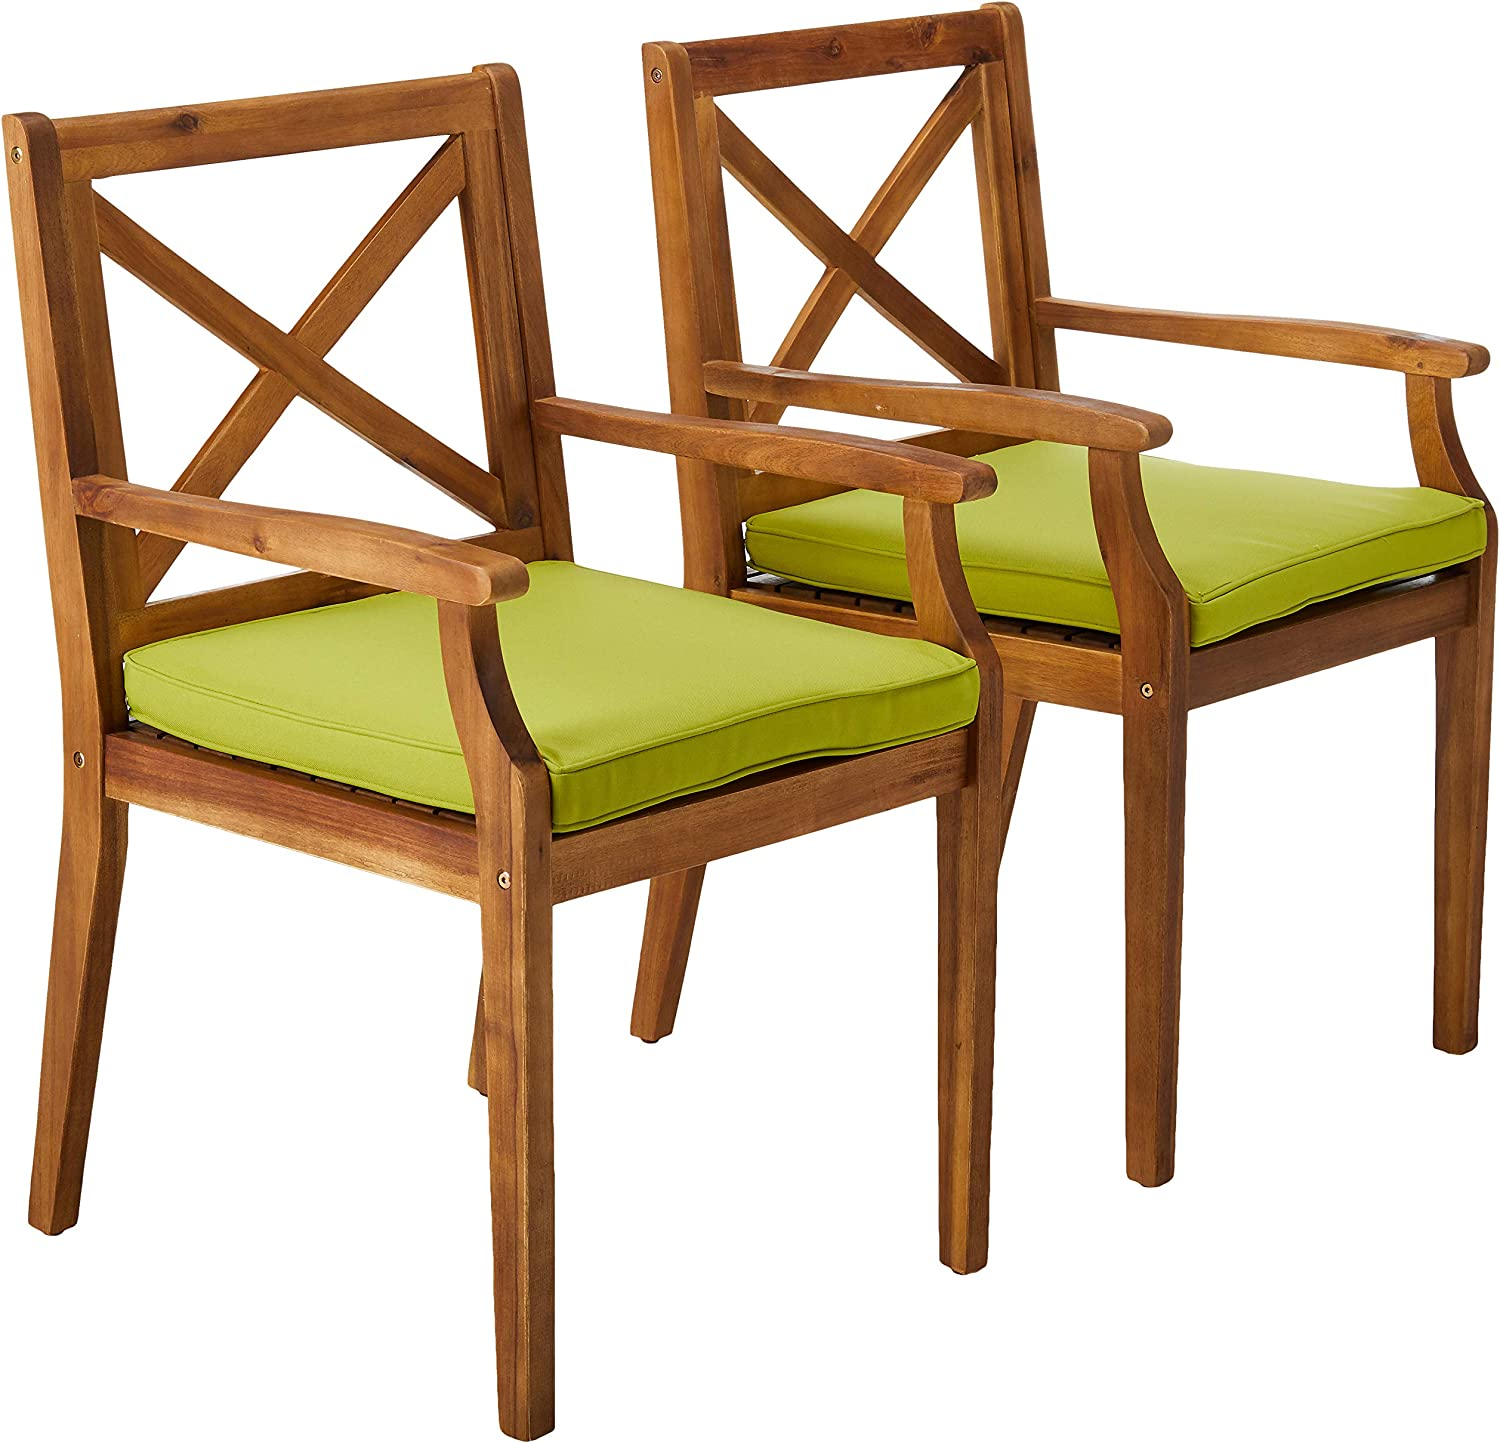 Christopher Knight Home 304683 Peter | Outdoor Acacia Wood Dining Chair with Cushion | Set of 2 | Teak/Green